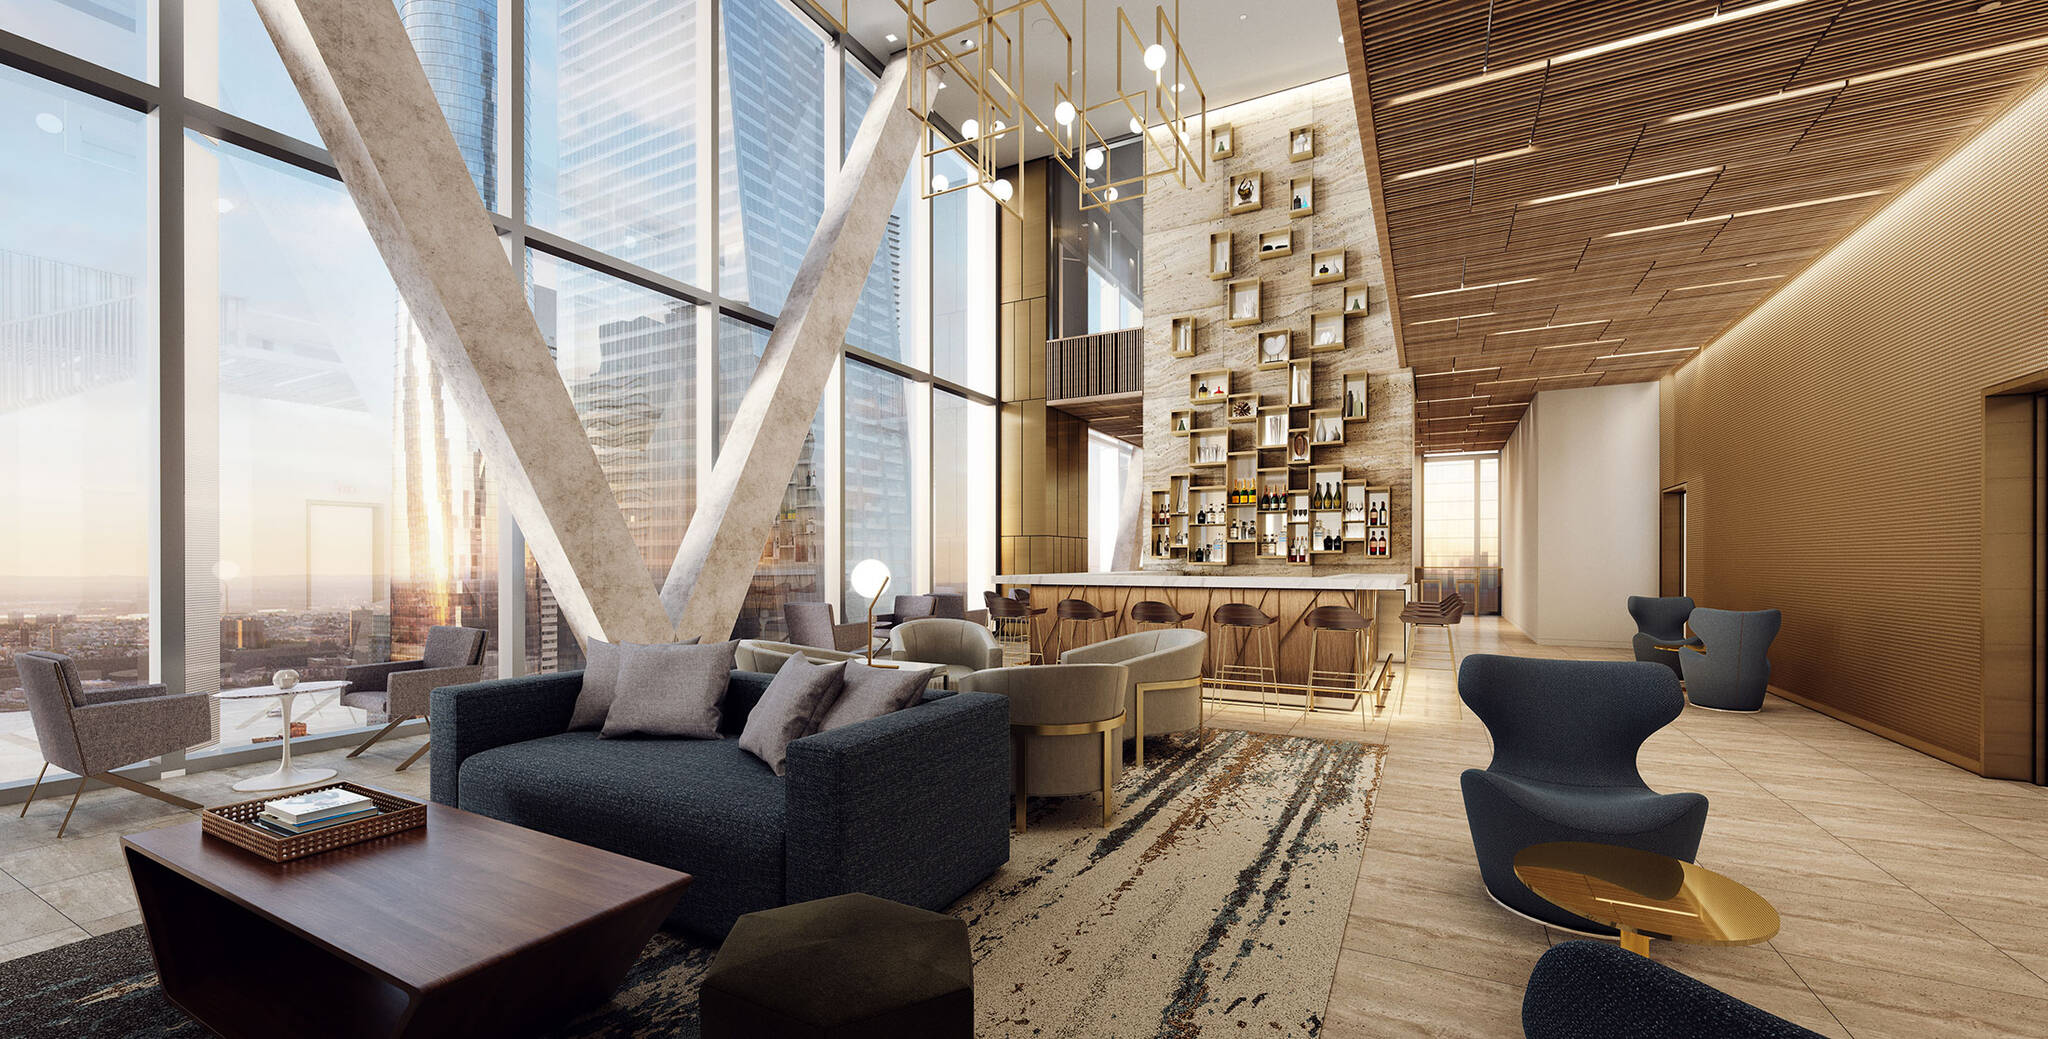 Hudson Yards Autograph Hotel project by Marriott is a modular hotel tower located at 432 West 31st Street in Hudson Yards, New York City designed by the architecture studio Danny Forster & Architecture